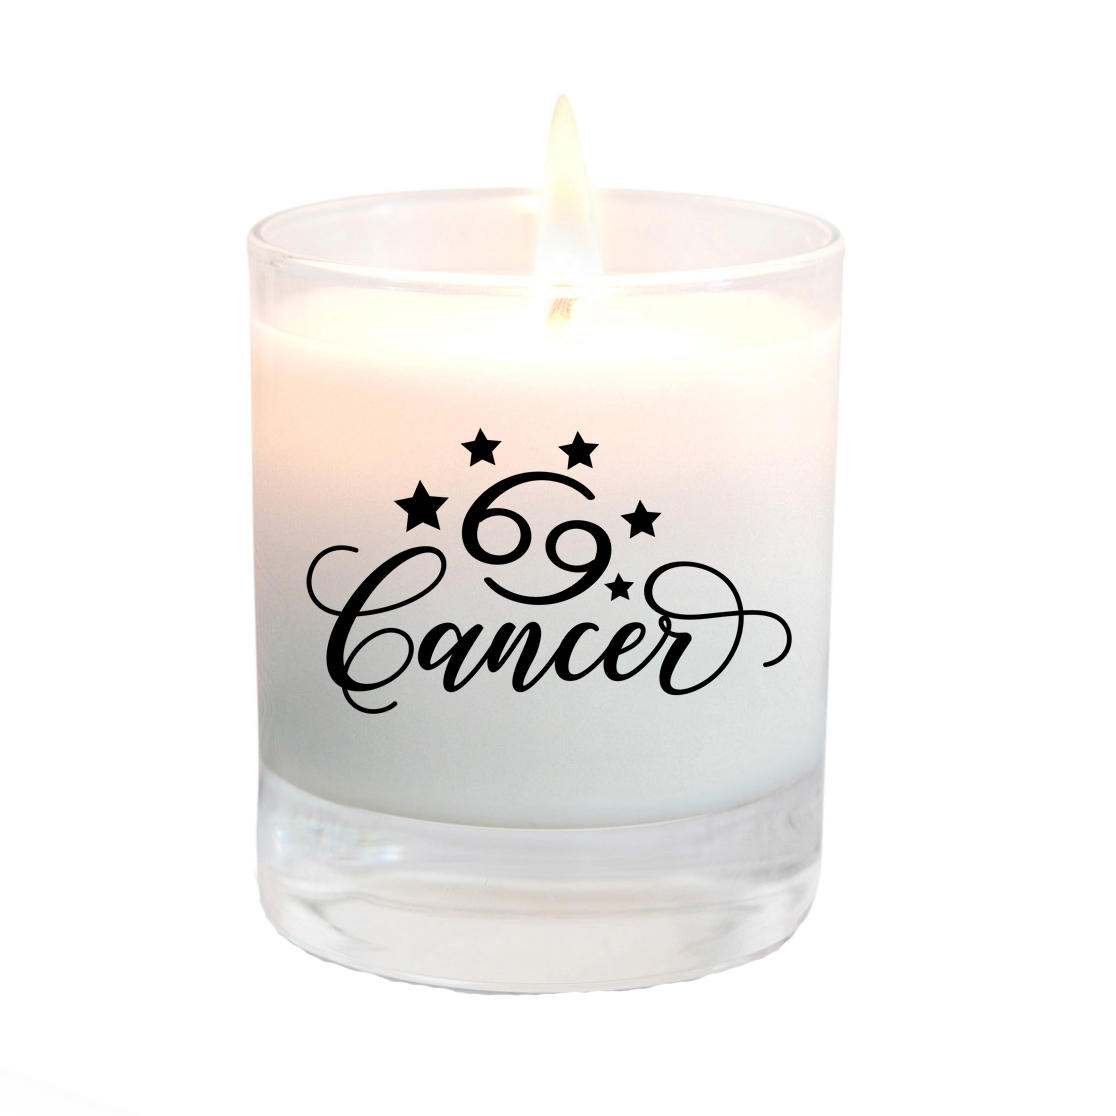 cancer star sign candle